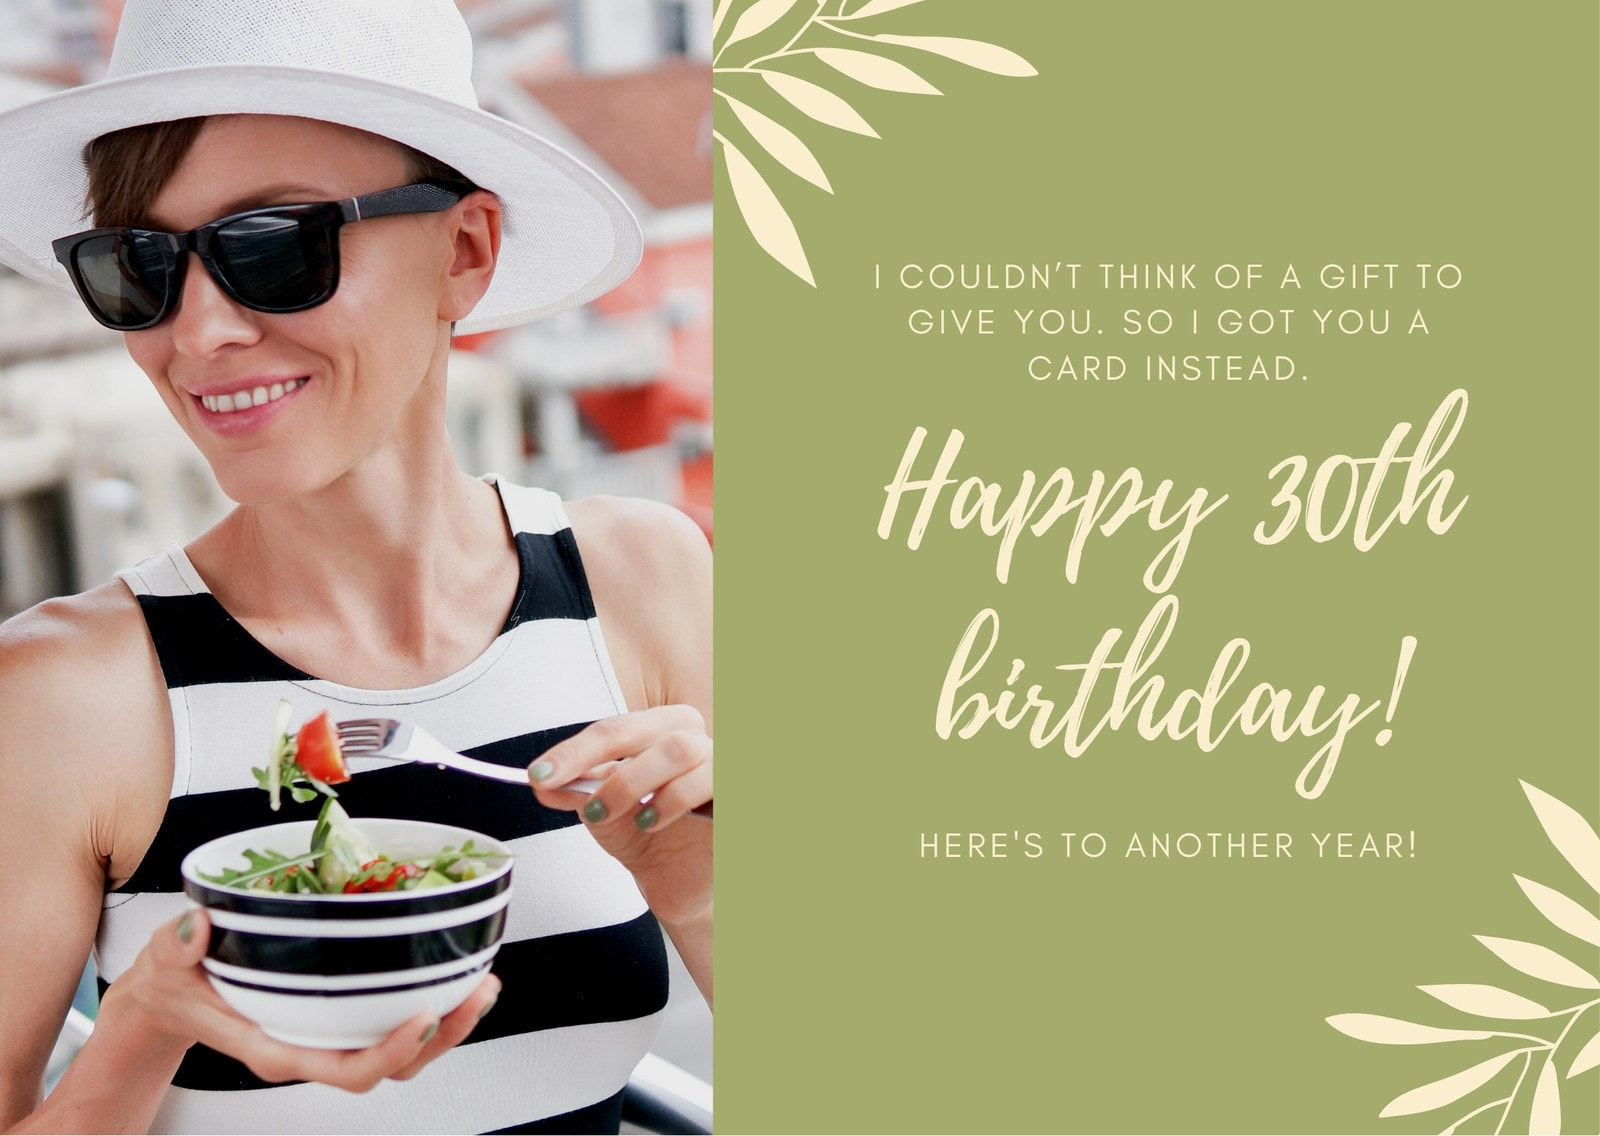 Green Woman Photo Illustration 30th Birthday Card